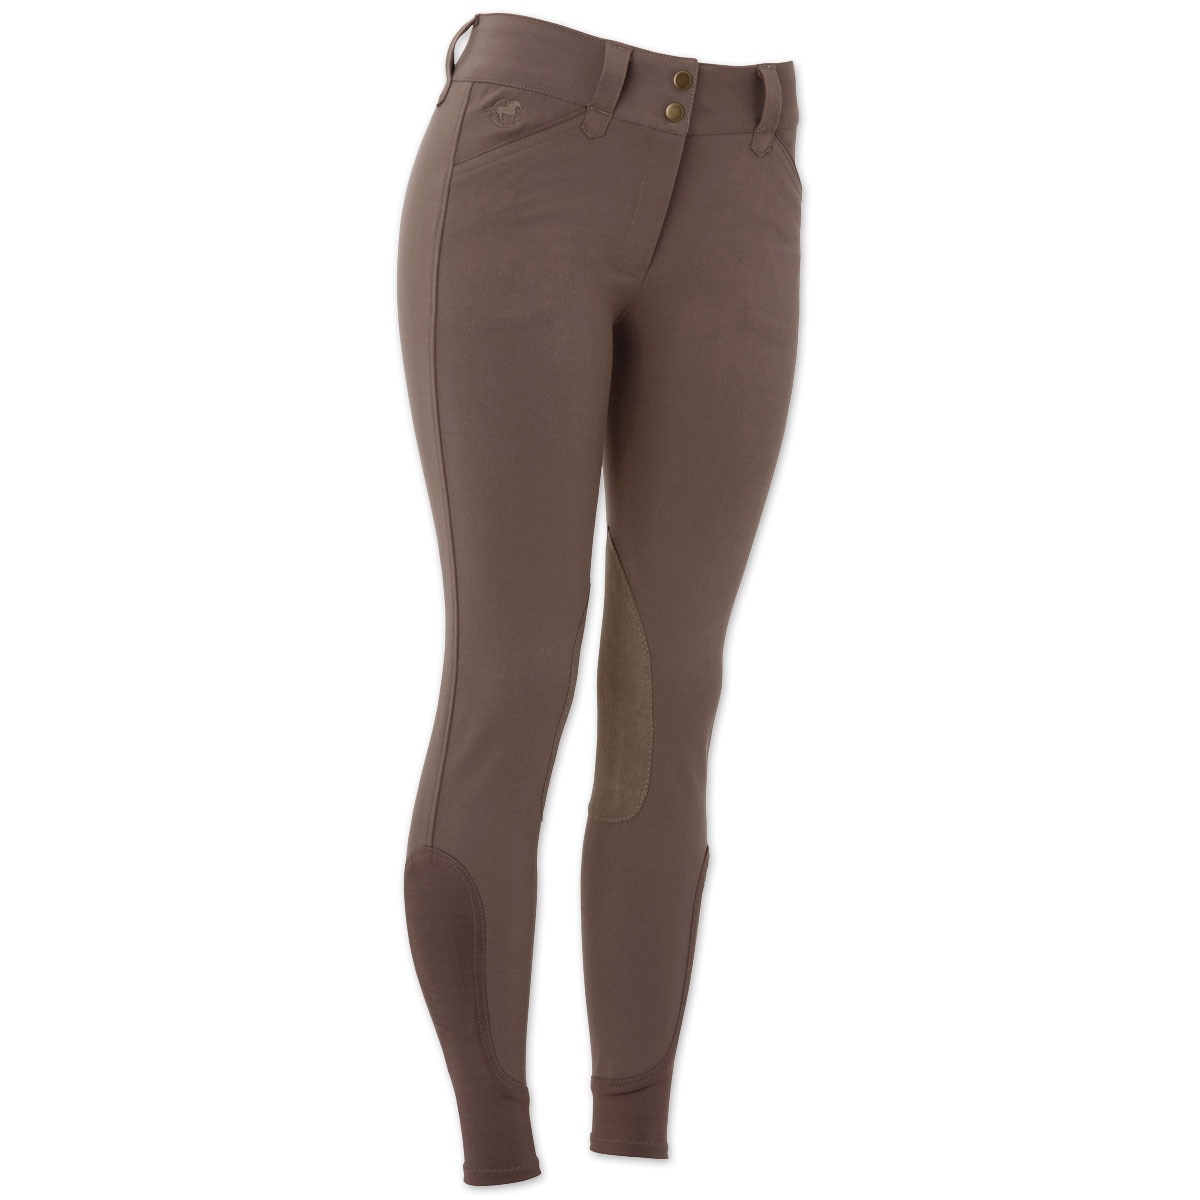 Piper Breeches by SmartPak - Classic Front Zip Knee Patch